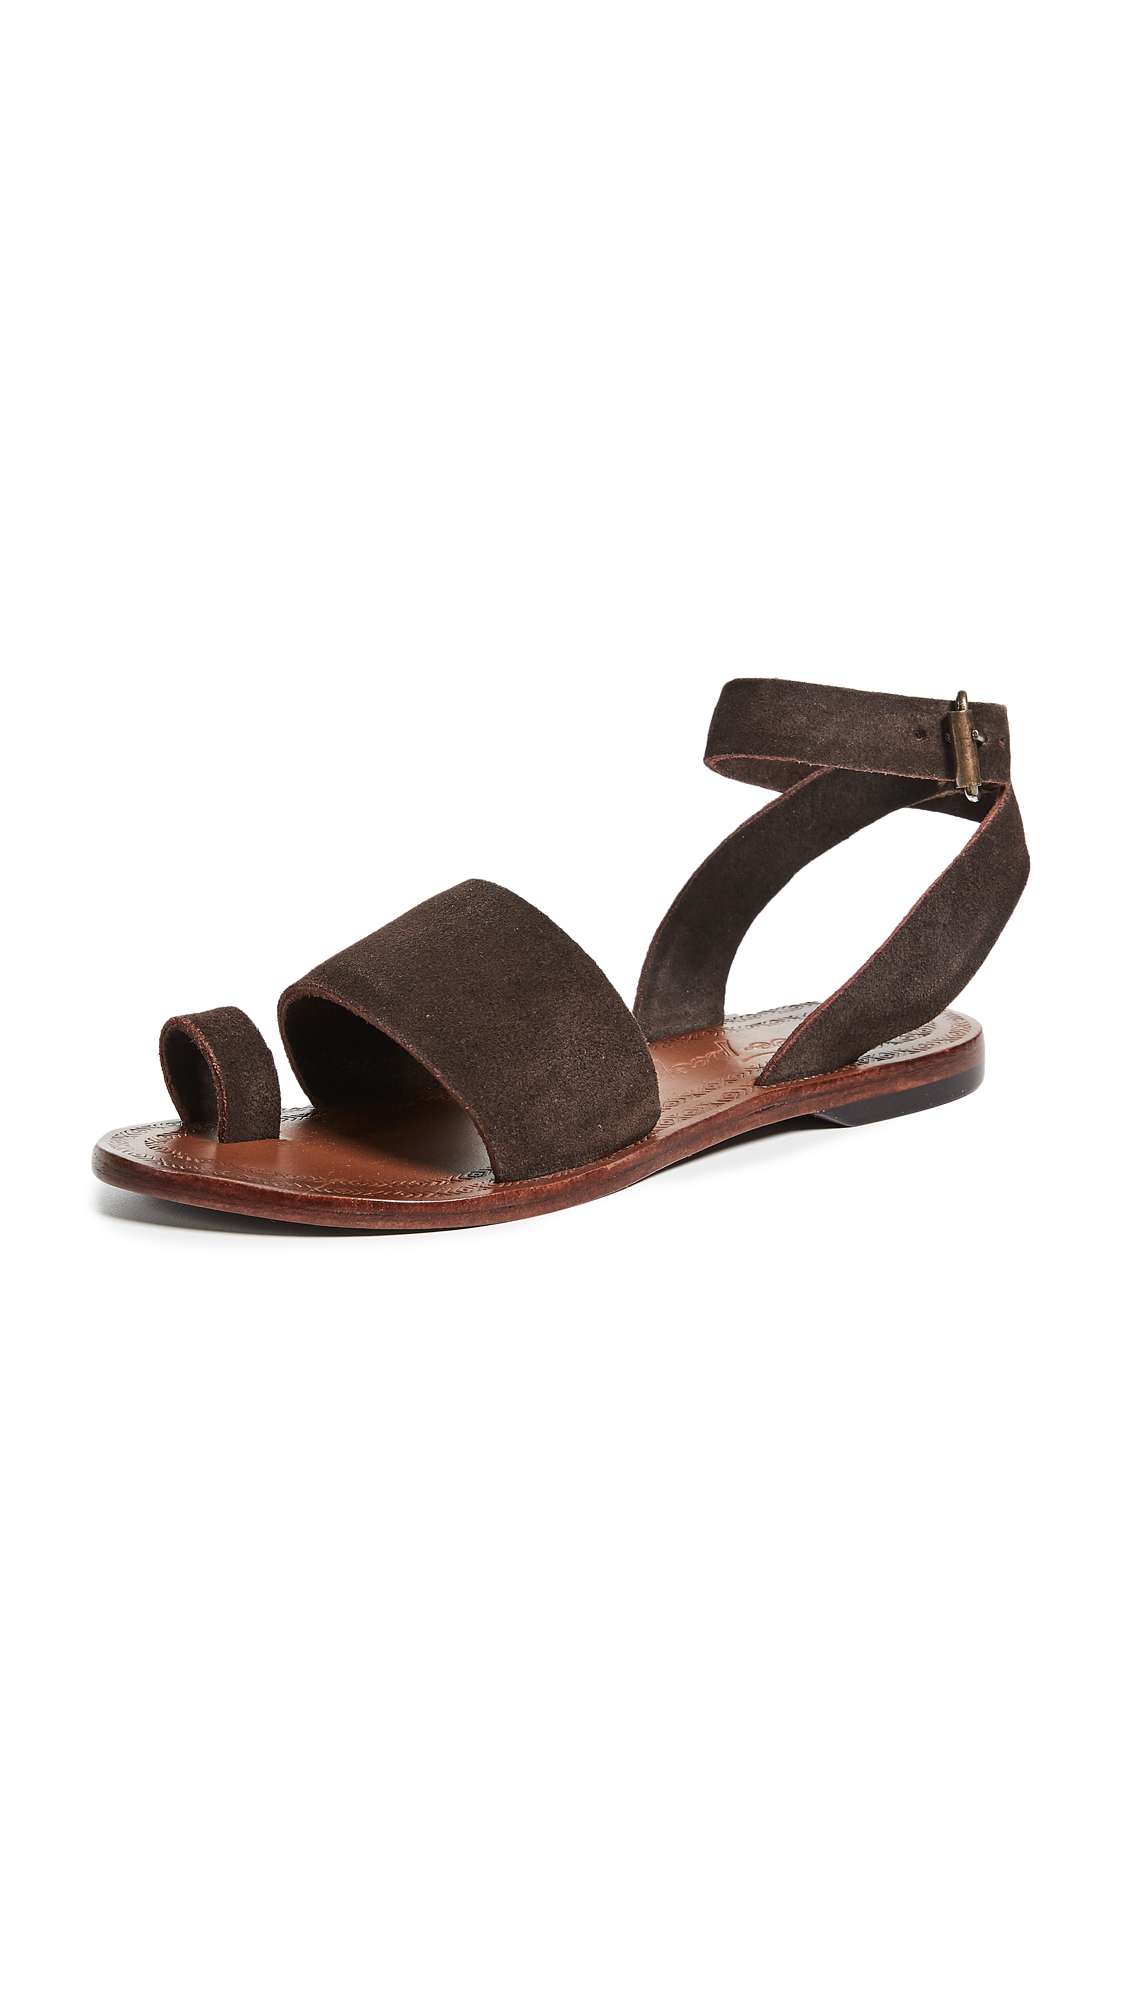 Free People Torrence Flat Sandals - Chocolate